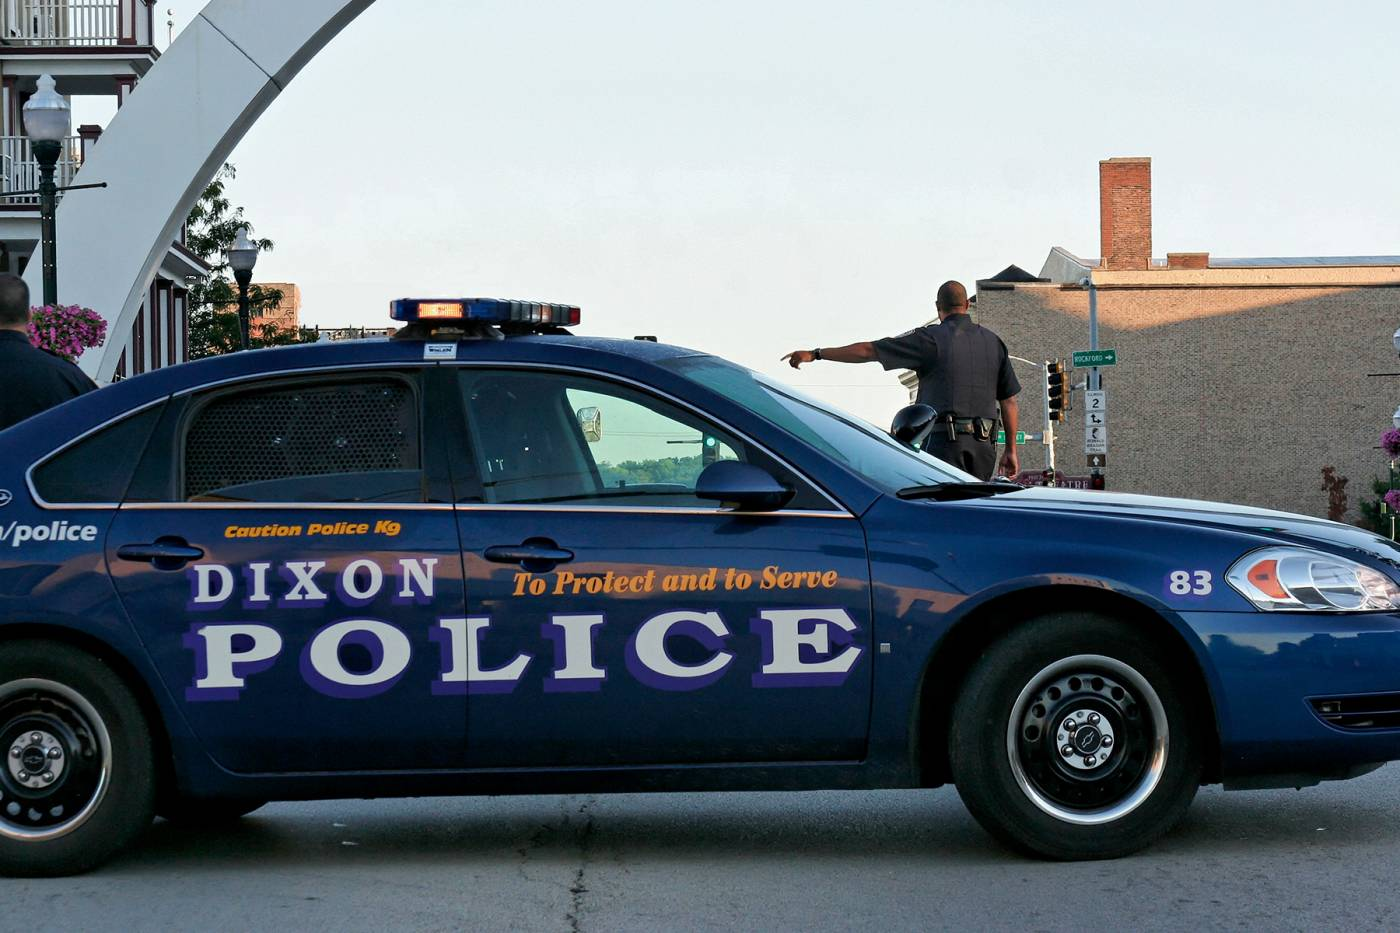 Inside the Dixon Police Department